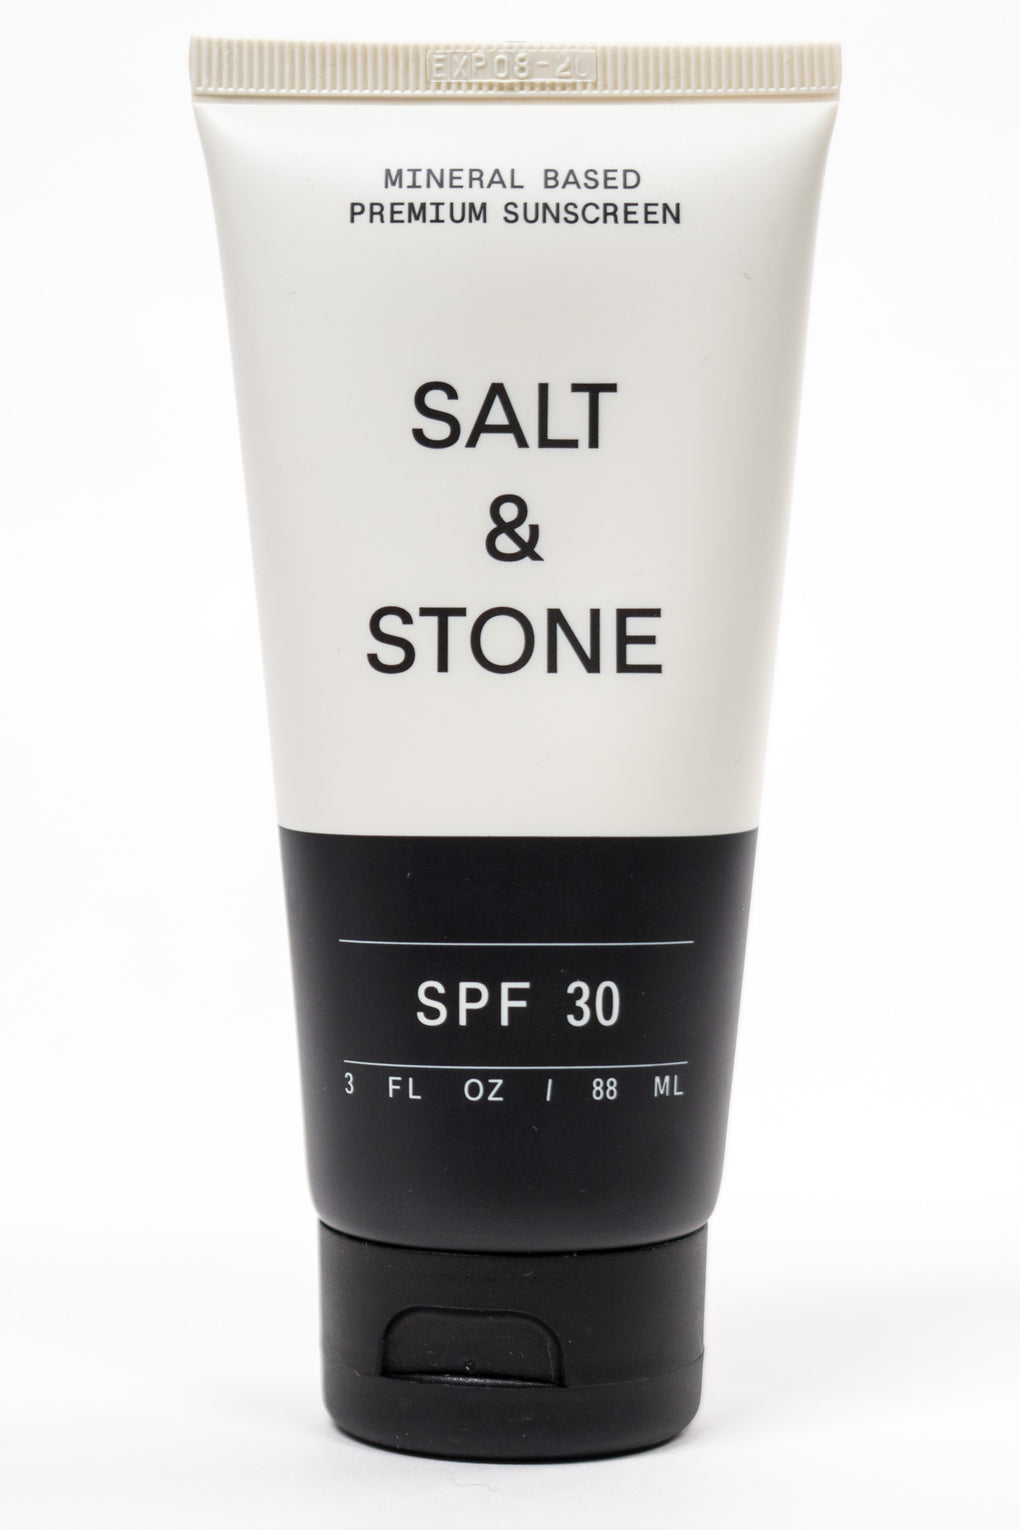 Salt & Stone SPF30 Sunscreen at Consigliere